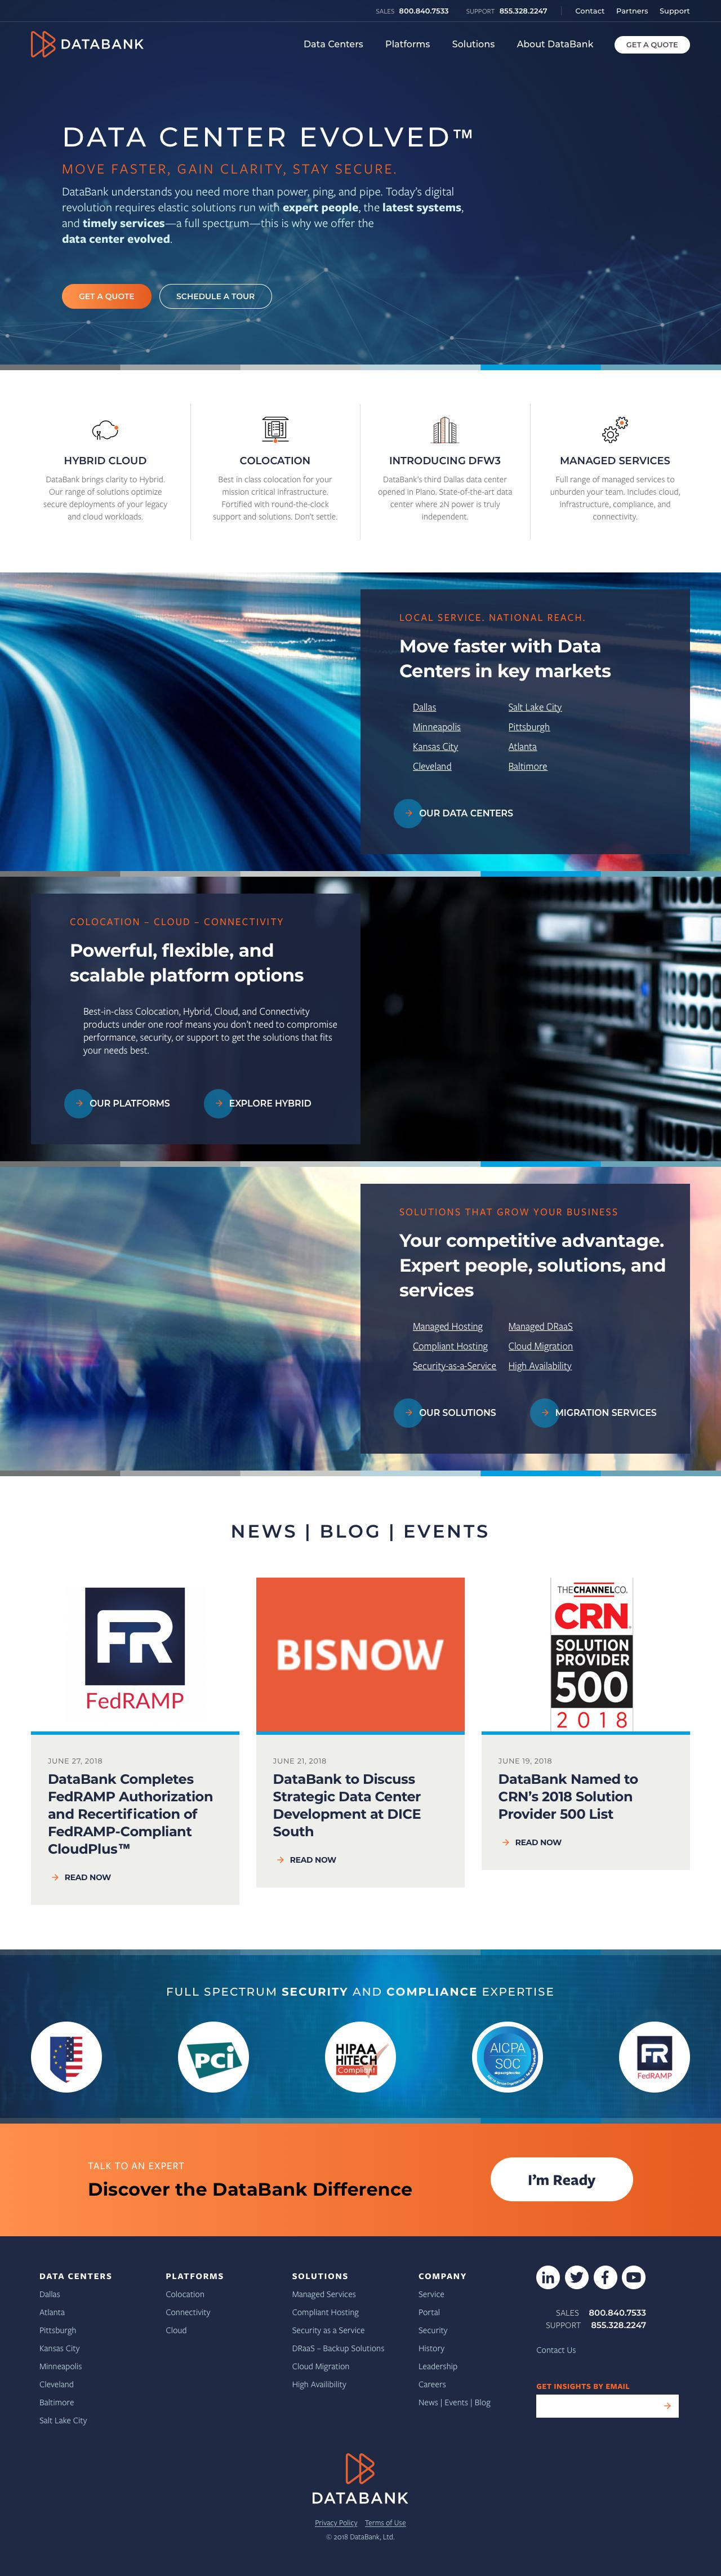 Screenshot of databank.com - DataBank: Colocation, Hybrid, and Connectivity | Data Center Evolved™ - captured June 27, 2018